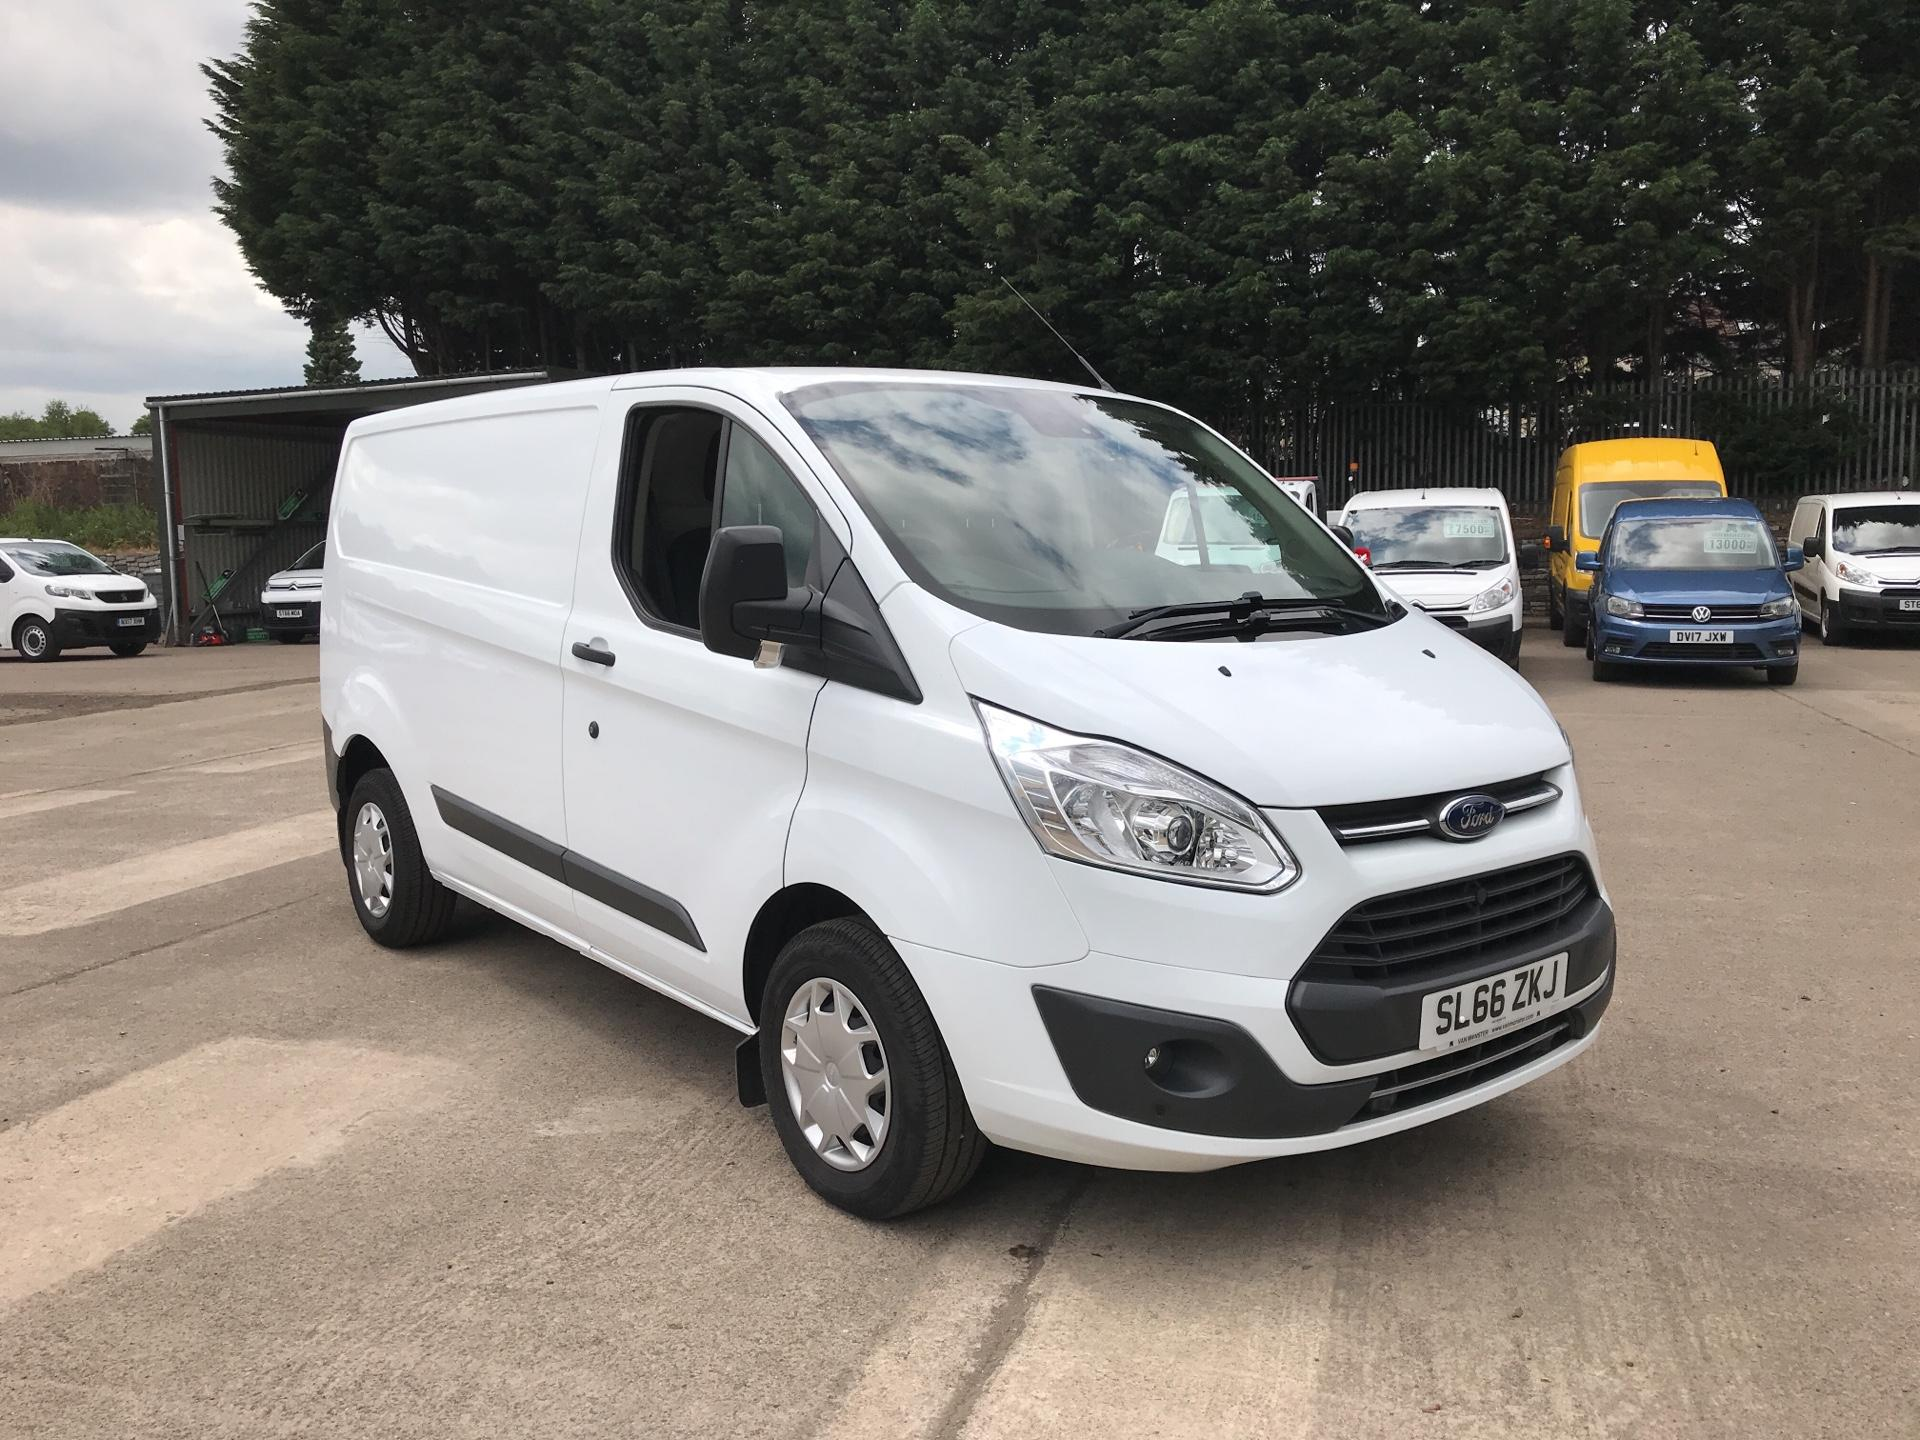 2016 Ford Transit Custom 270 L1 DIESEL FWD 2.0 TDCI 130PS LOW ROOF TREND EURO 6 (SL66ZKJ) Thumbnail 1